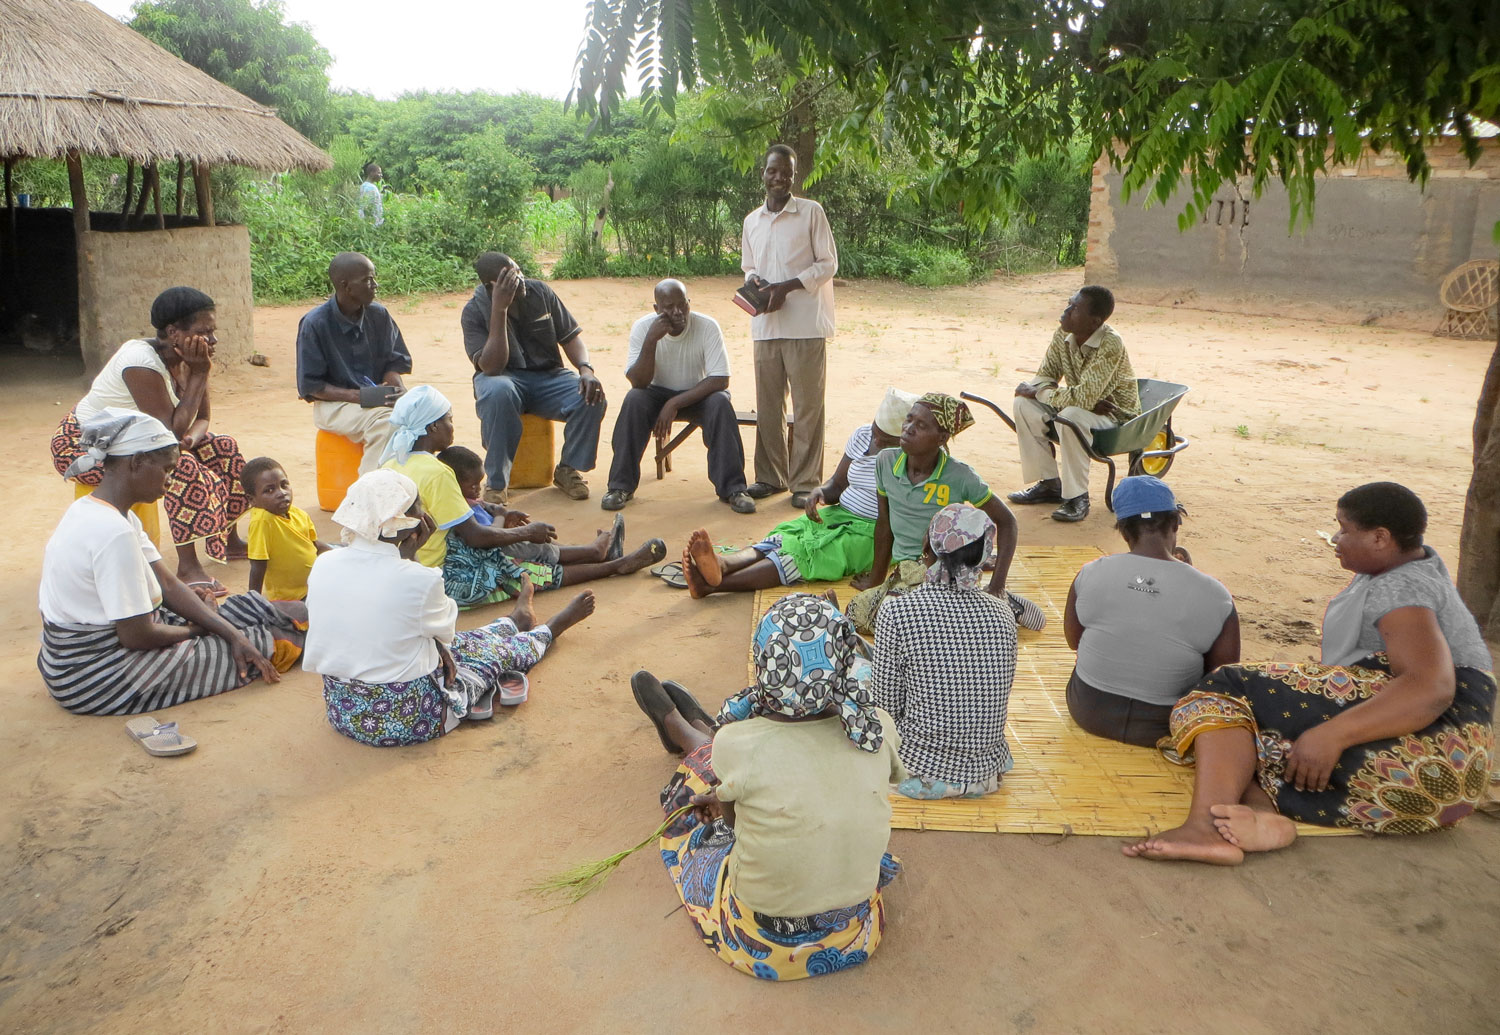 The Care Workers meet on a regular basis to pray and share the word of God together.